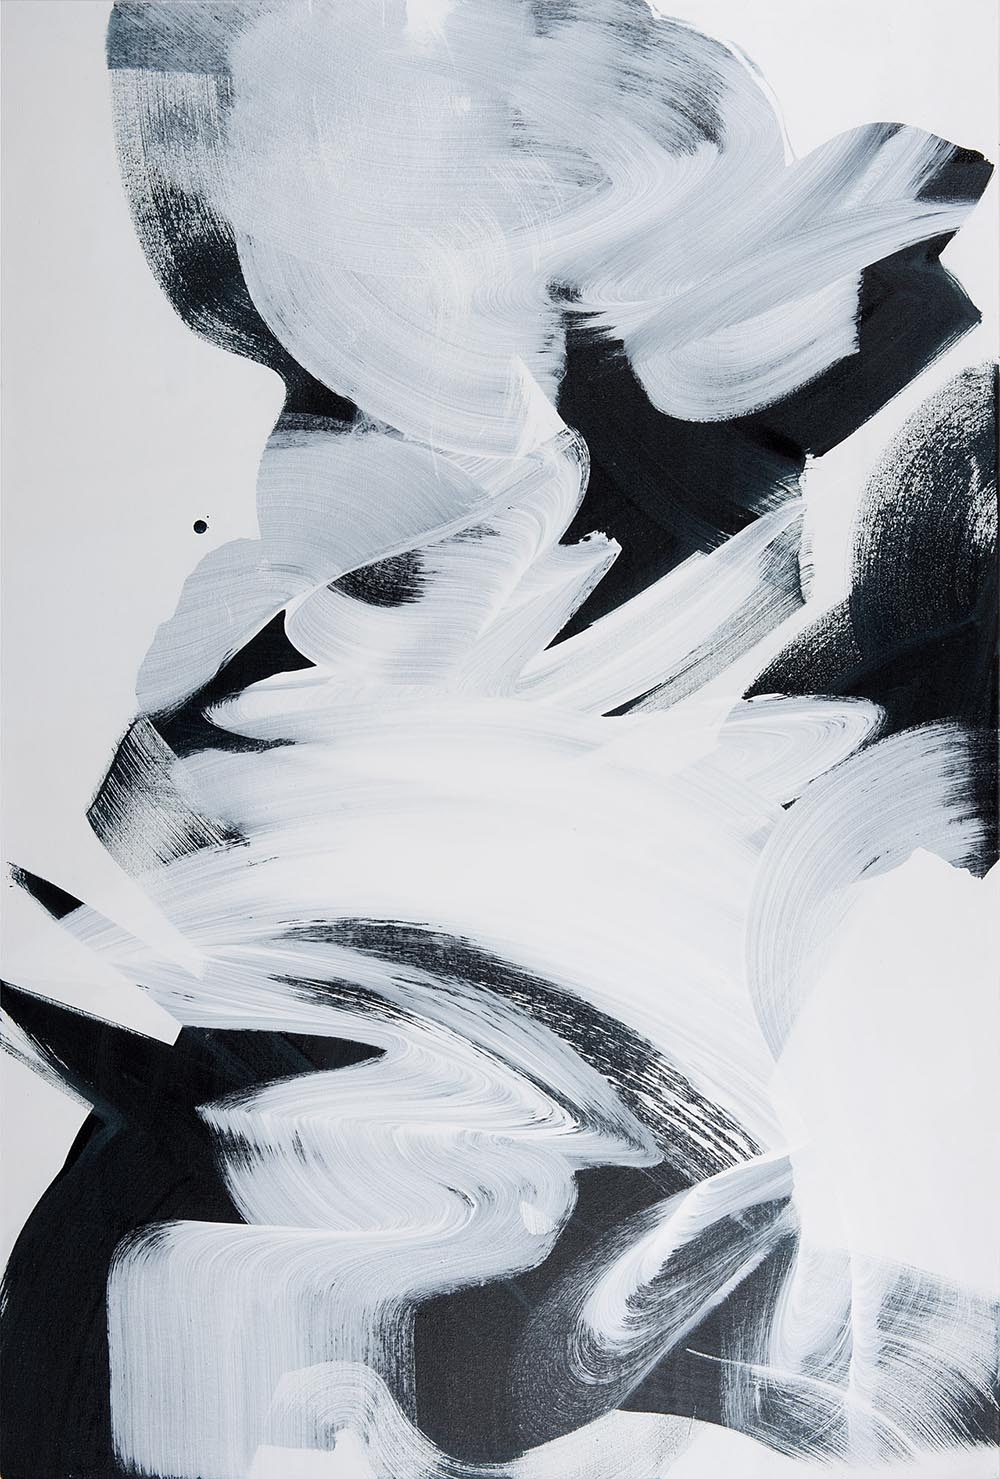 Andrea McCuaig Prelude to zen IV 2014 Acrylic on canvas 150 x 100cm